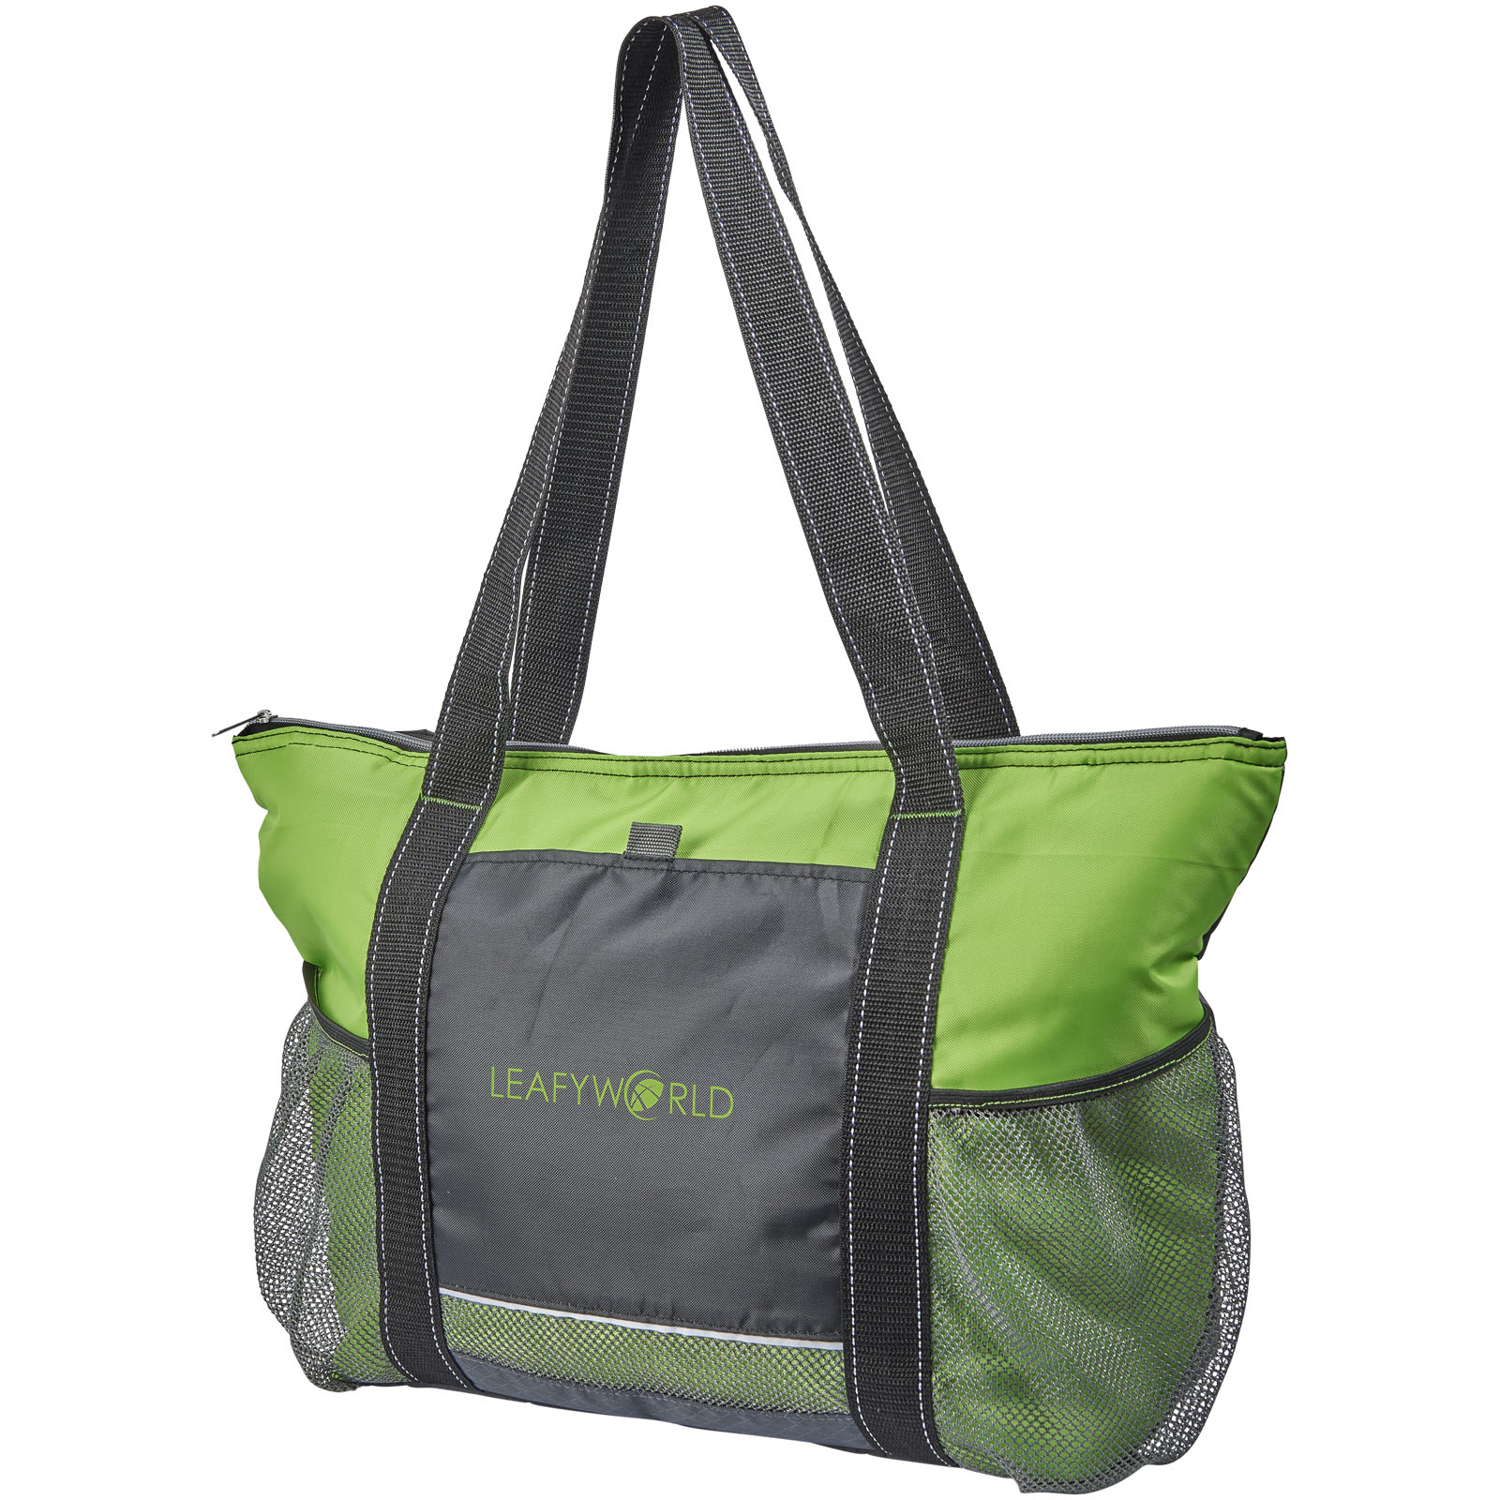 Falkenberg 30-Can Cooler Tote Bag